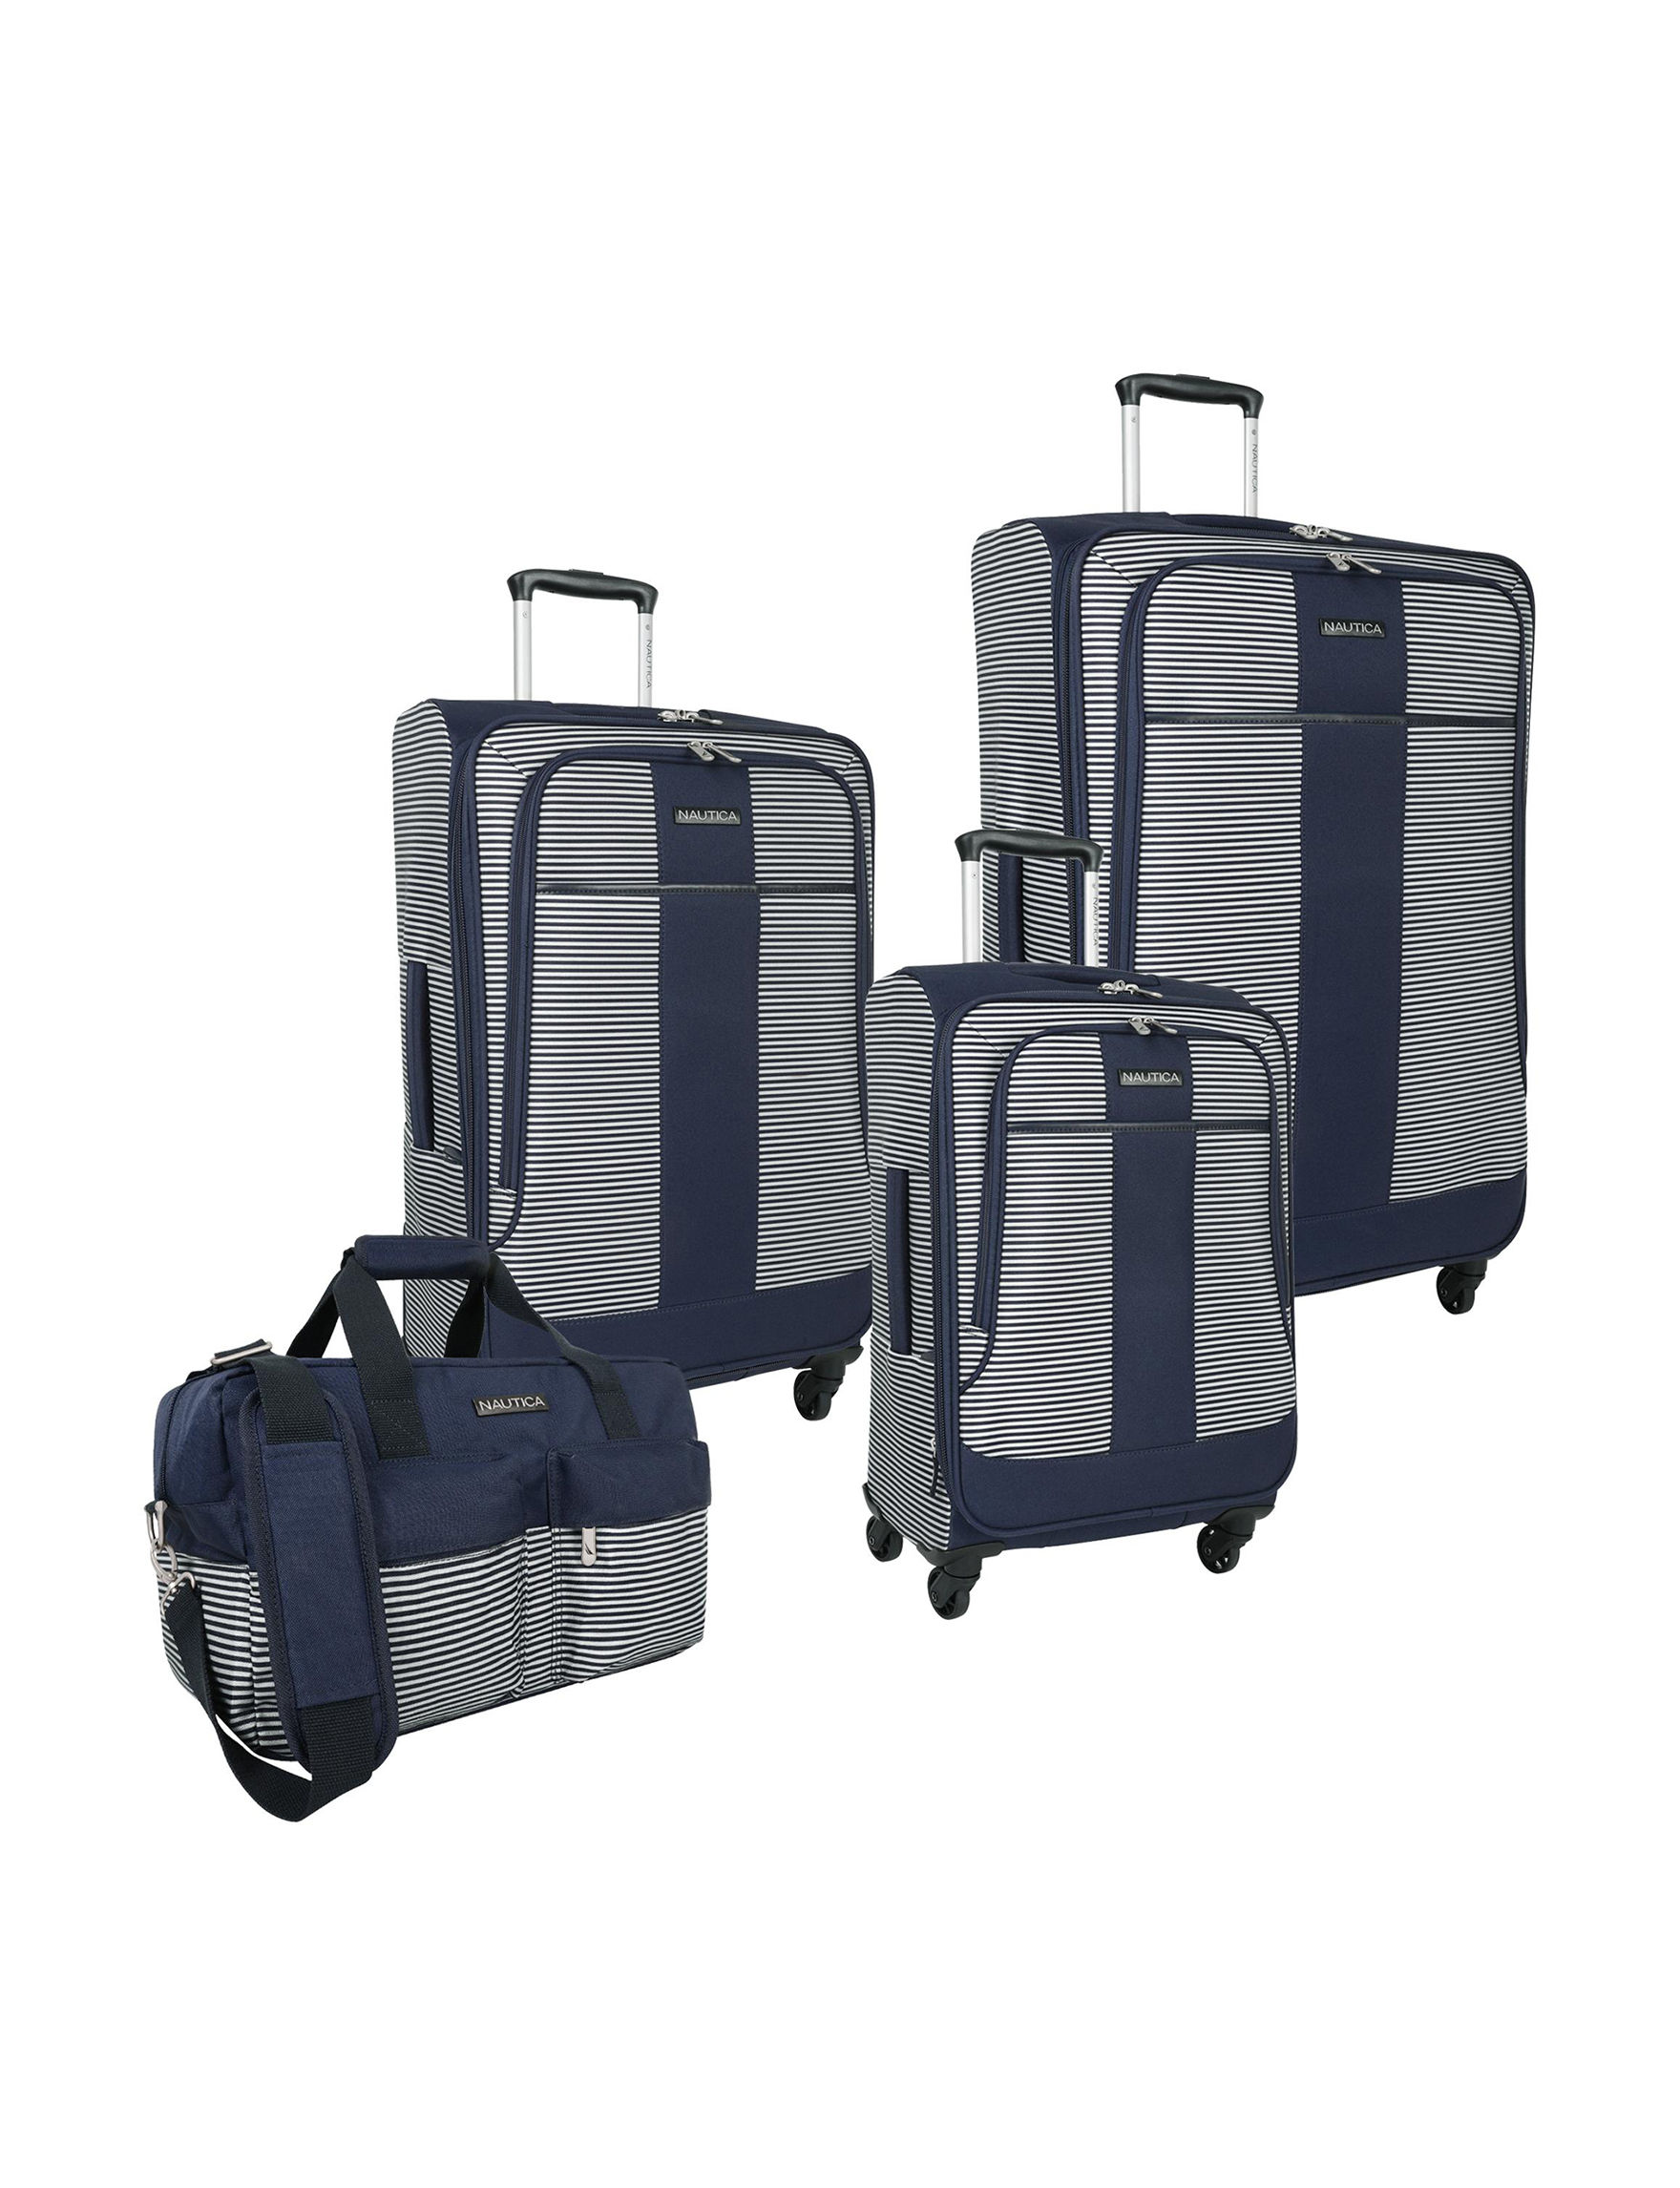 Nautica Navy / White Luggage Sets Upright Spinners